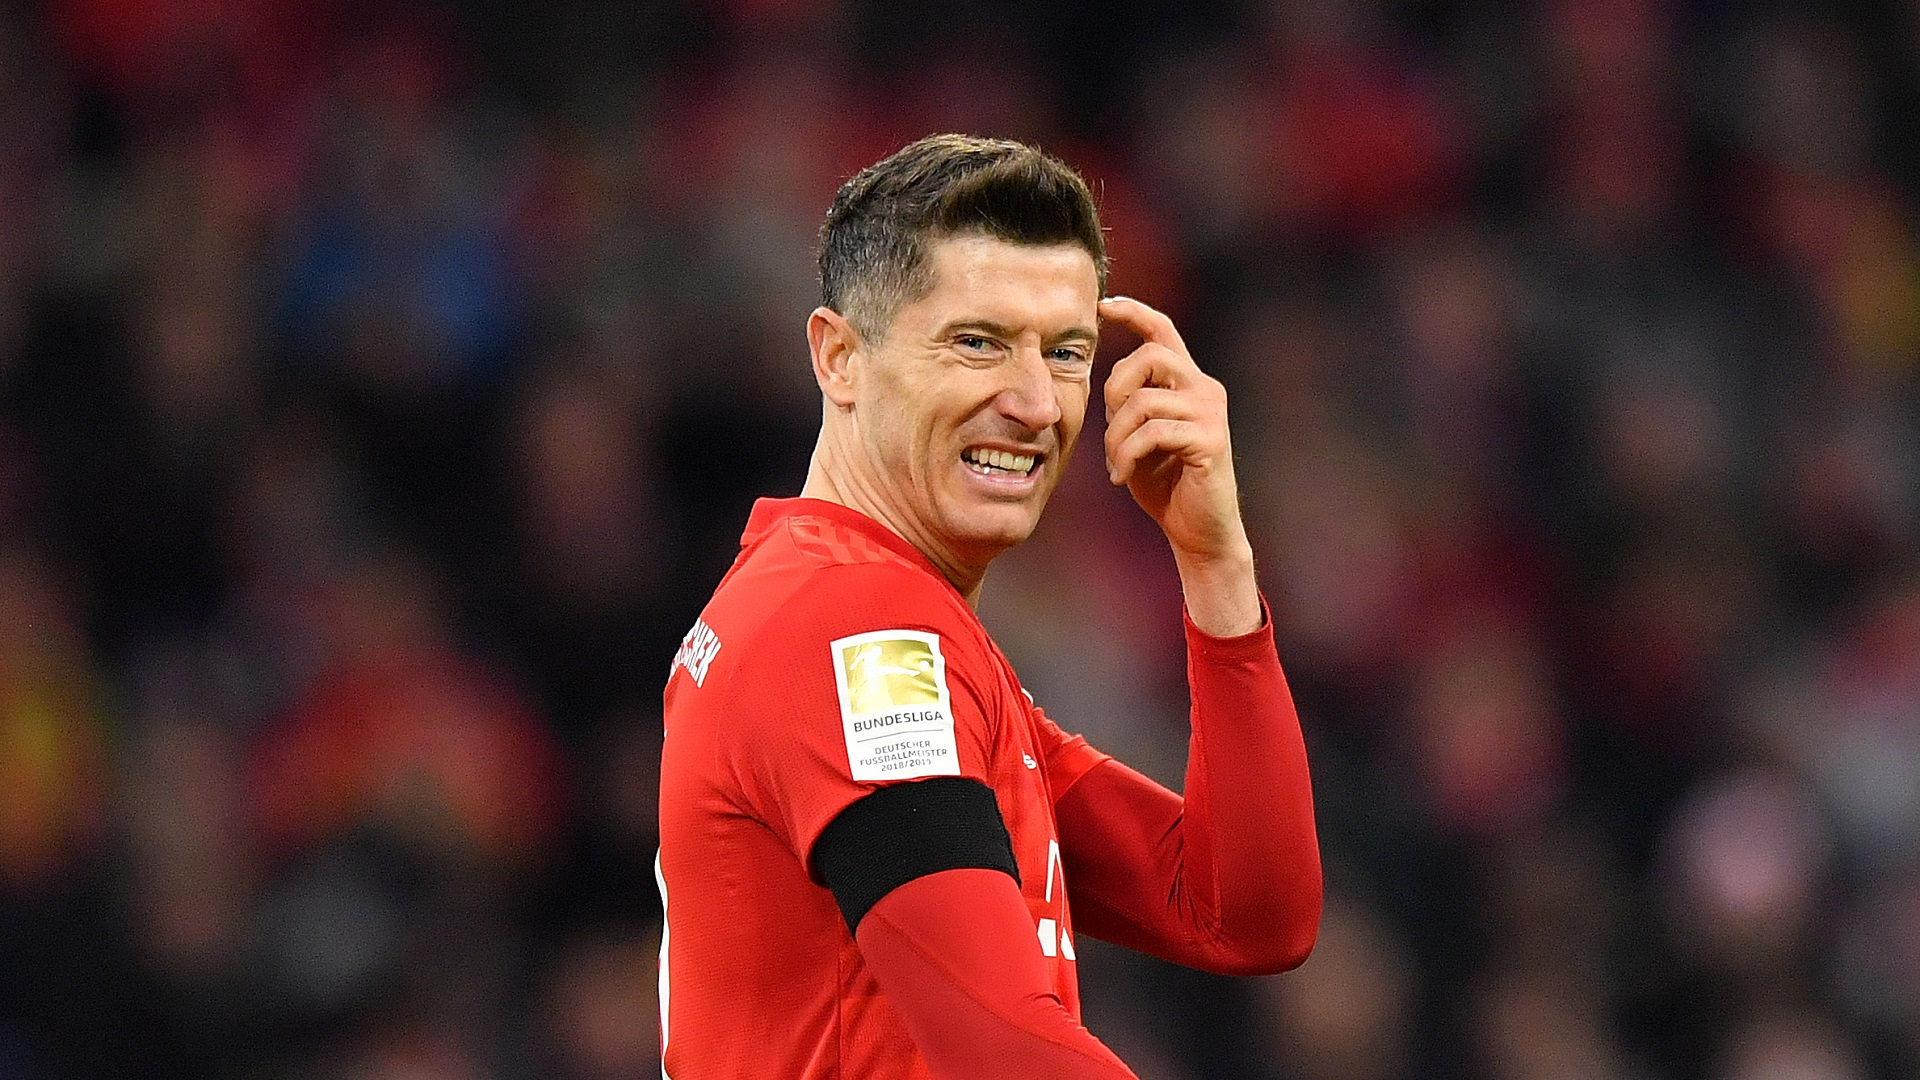 Lewandowski is the best No.9 in the world and Kimmich will be a legend, claims Bayern team-mate Javi Martinez